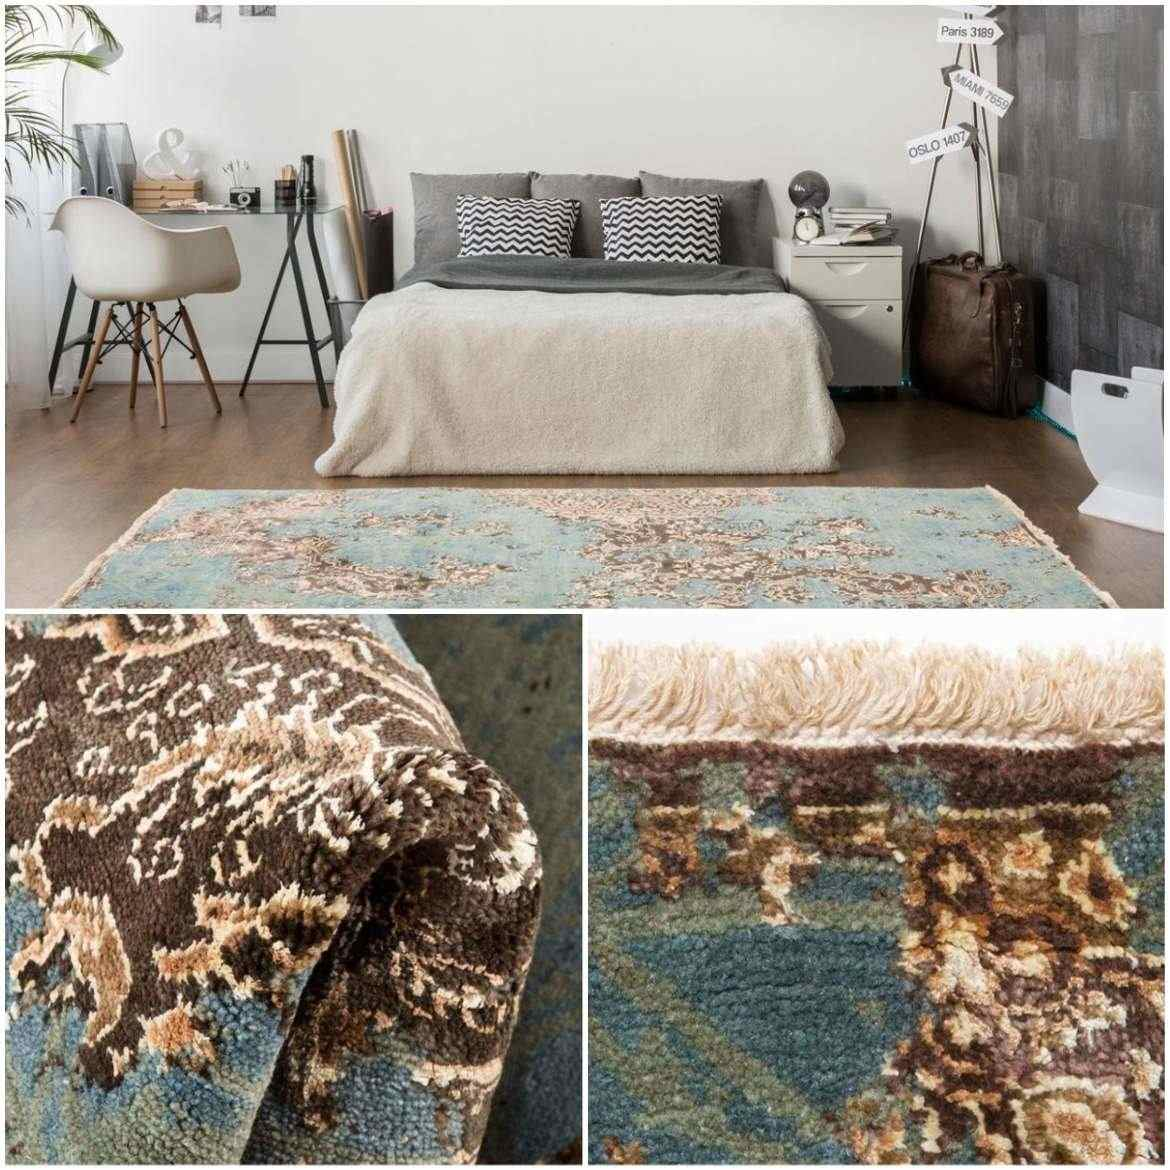 luxurious-hand-knotted-oriental-rug-in-bedroom